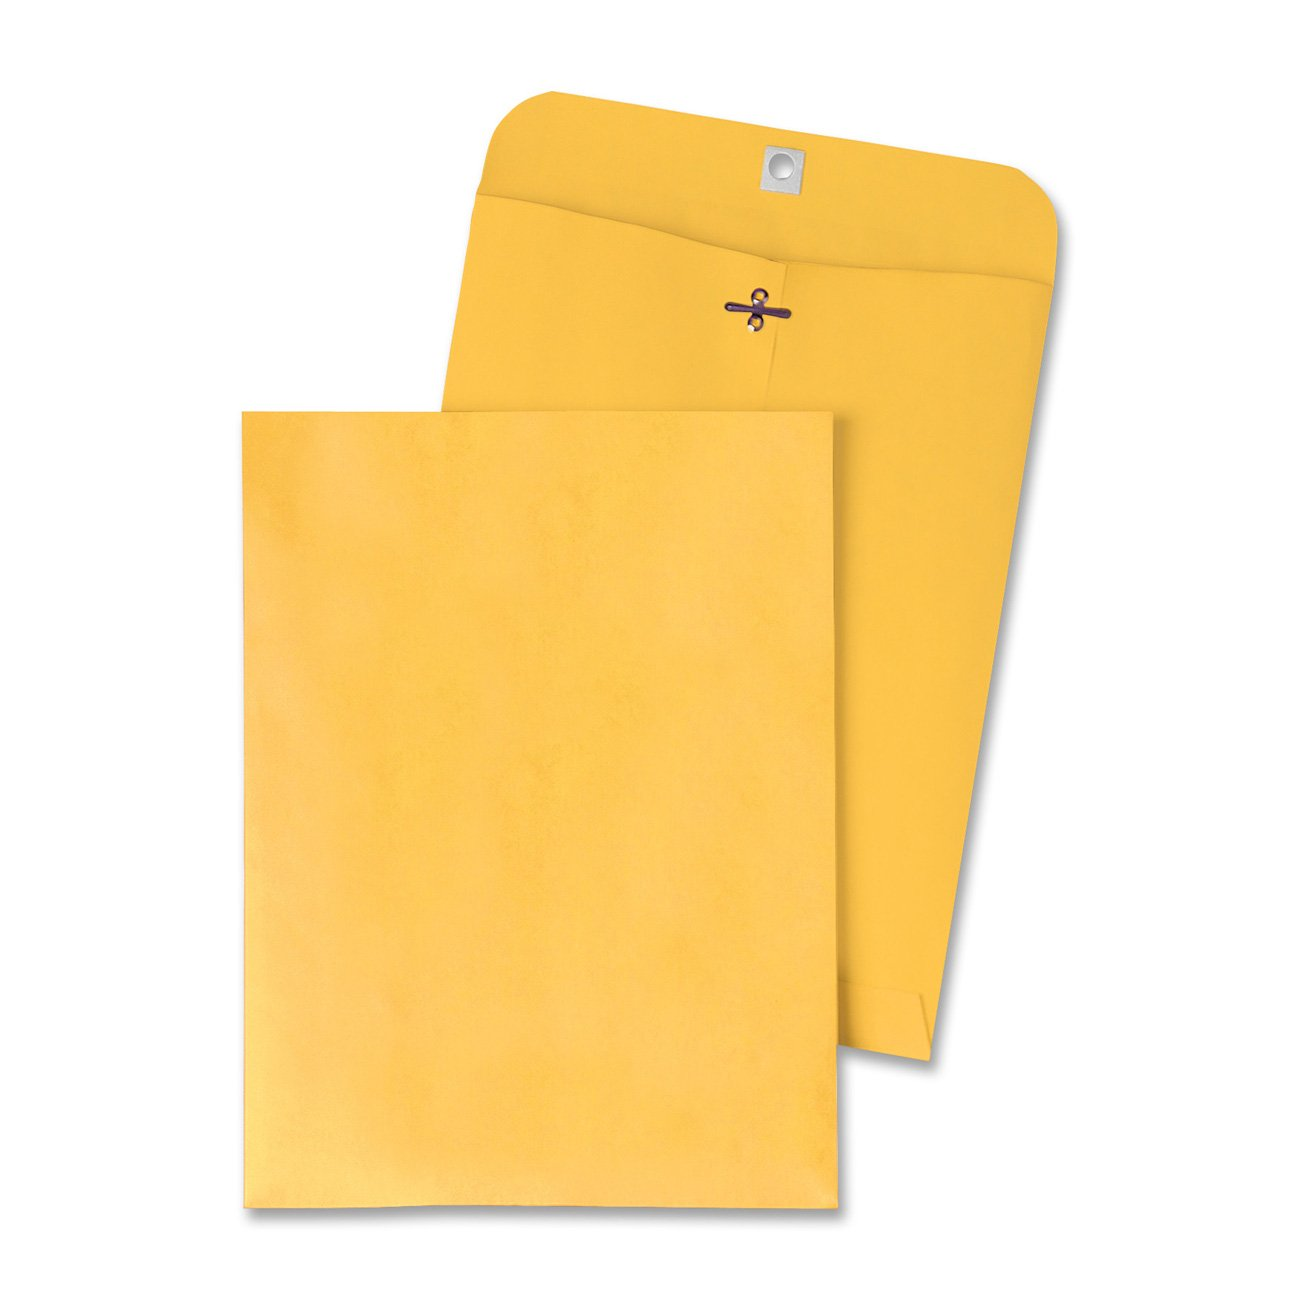 Amazon.com: Quality Park Clasp Envelopes, 6 x 9 - Inches, Box of ...